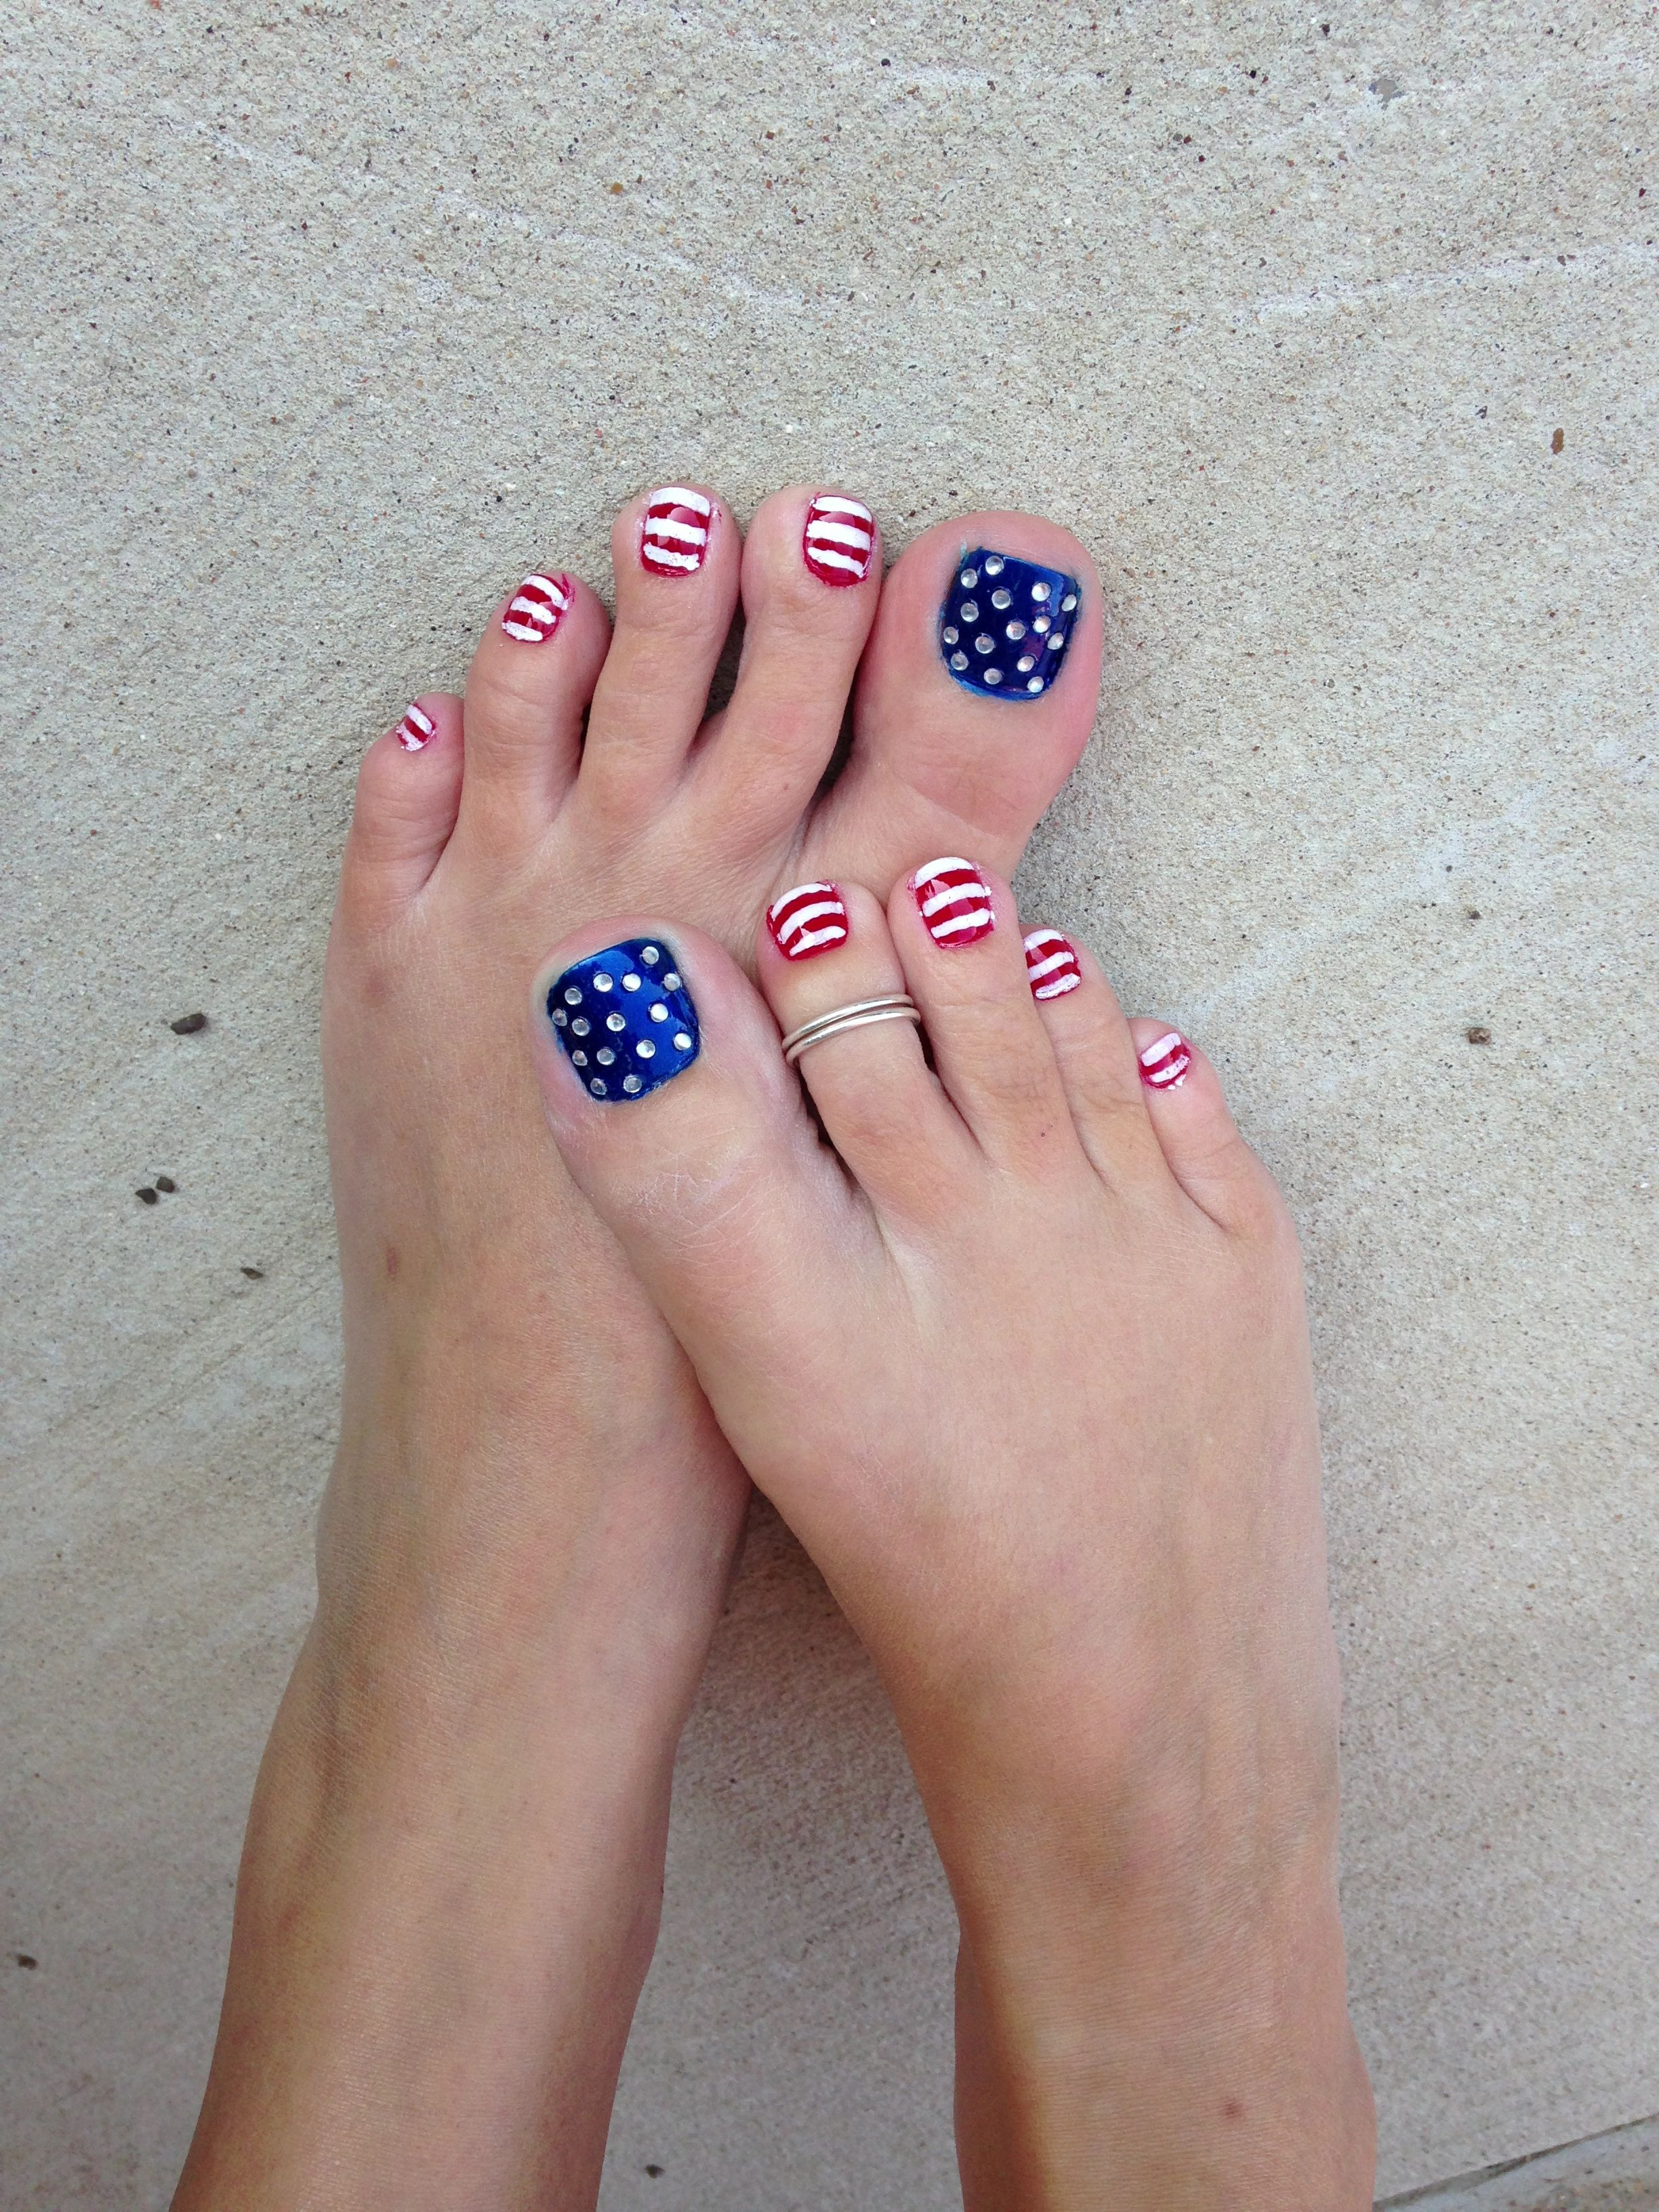 July 4th nails (With images) | Toe nail designs, Patriotic ...